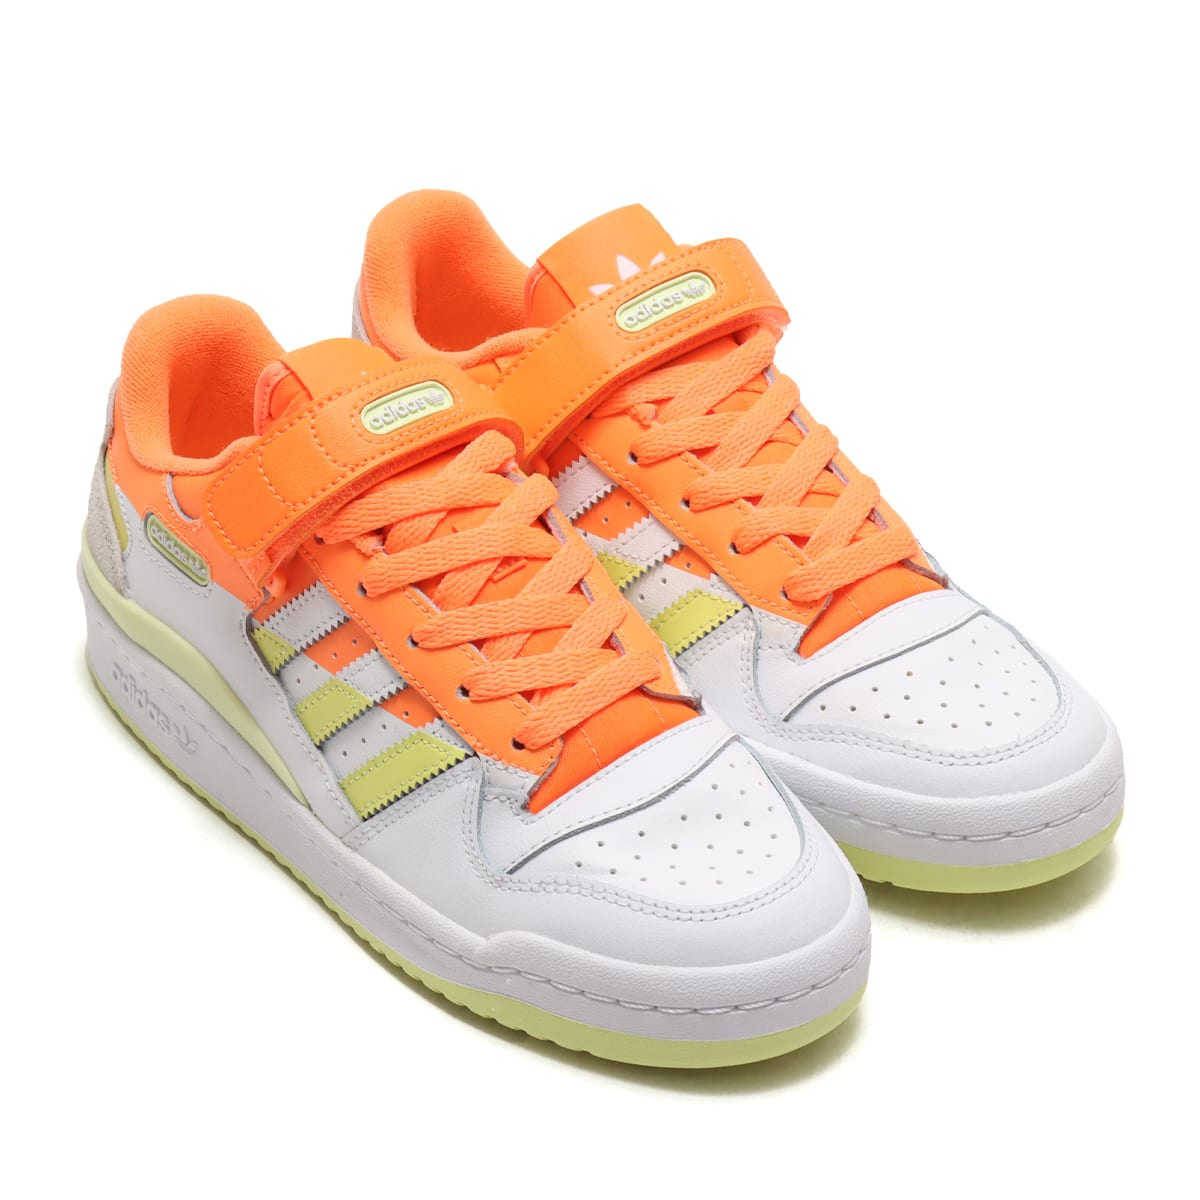 adidas FORUM LOW PREMIUM W SCREAMING ORANGE/YELLOWTINT/FOOTWEAR WHITE 21SS-I_photo_large